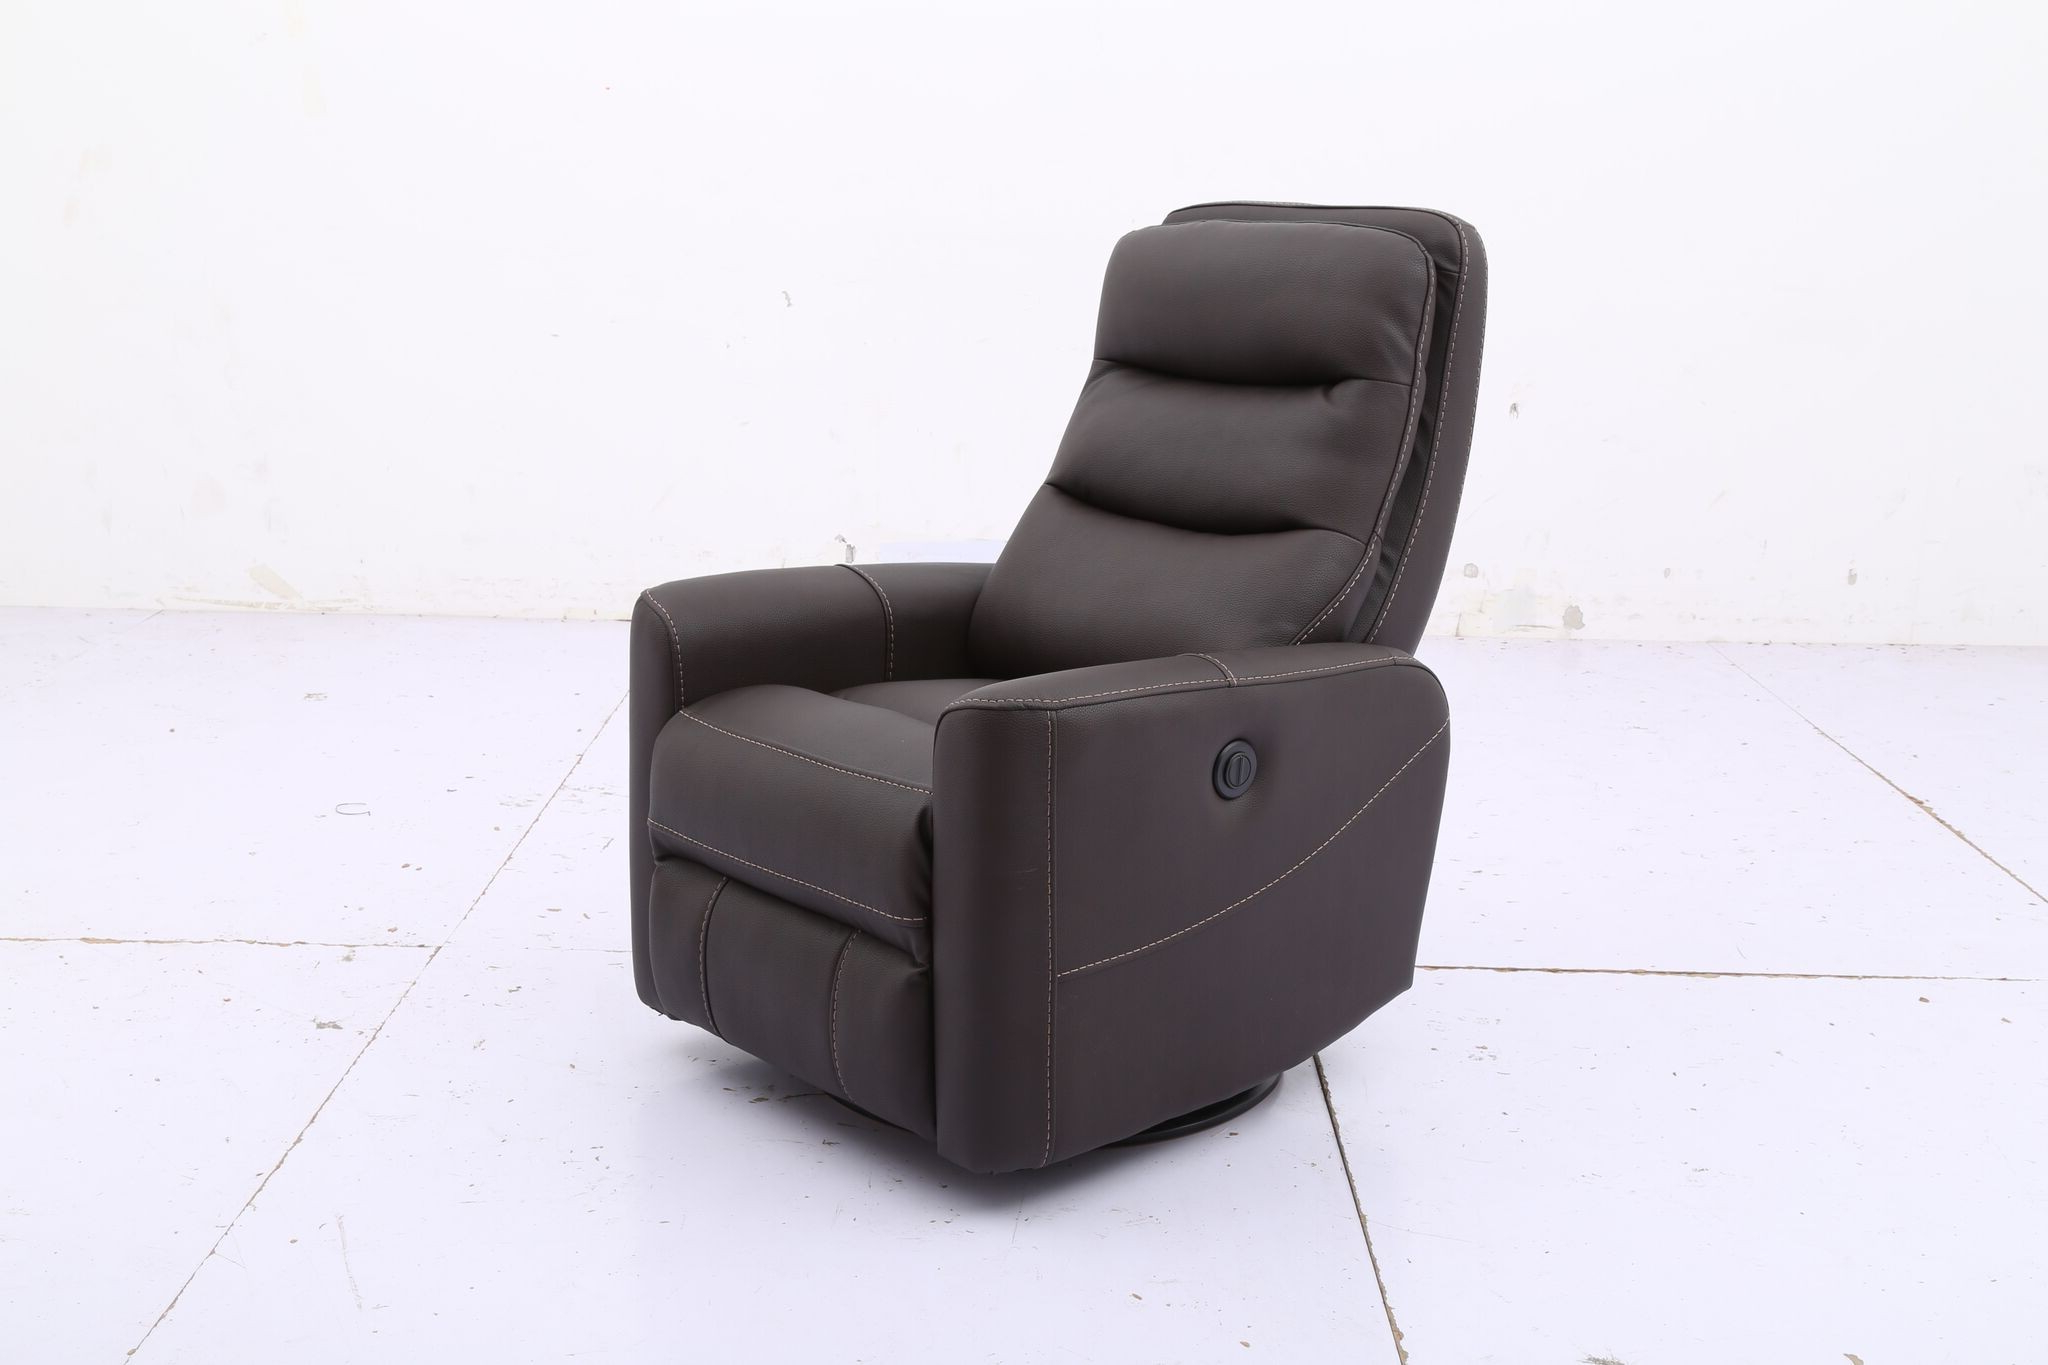 Widely Used Hercules  Chocolate  Swivel Power Recliner With Regard To Hercules Oyster Swivel Glider Recliners (View 20 of 20)